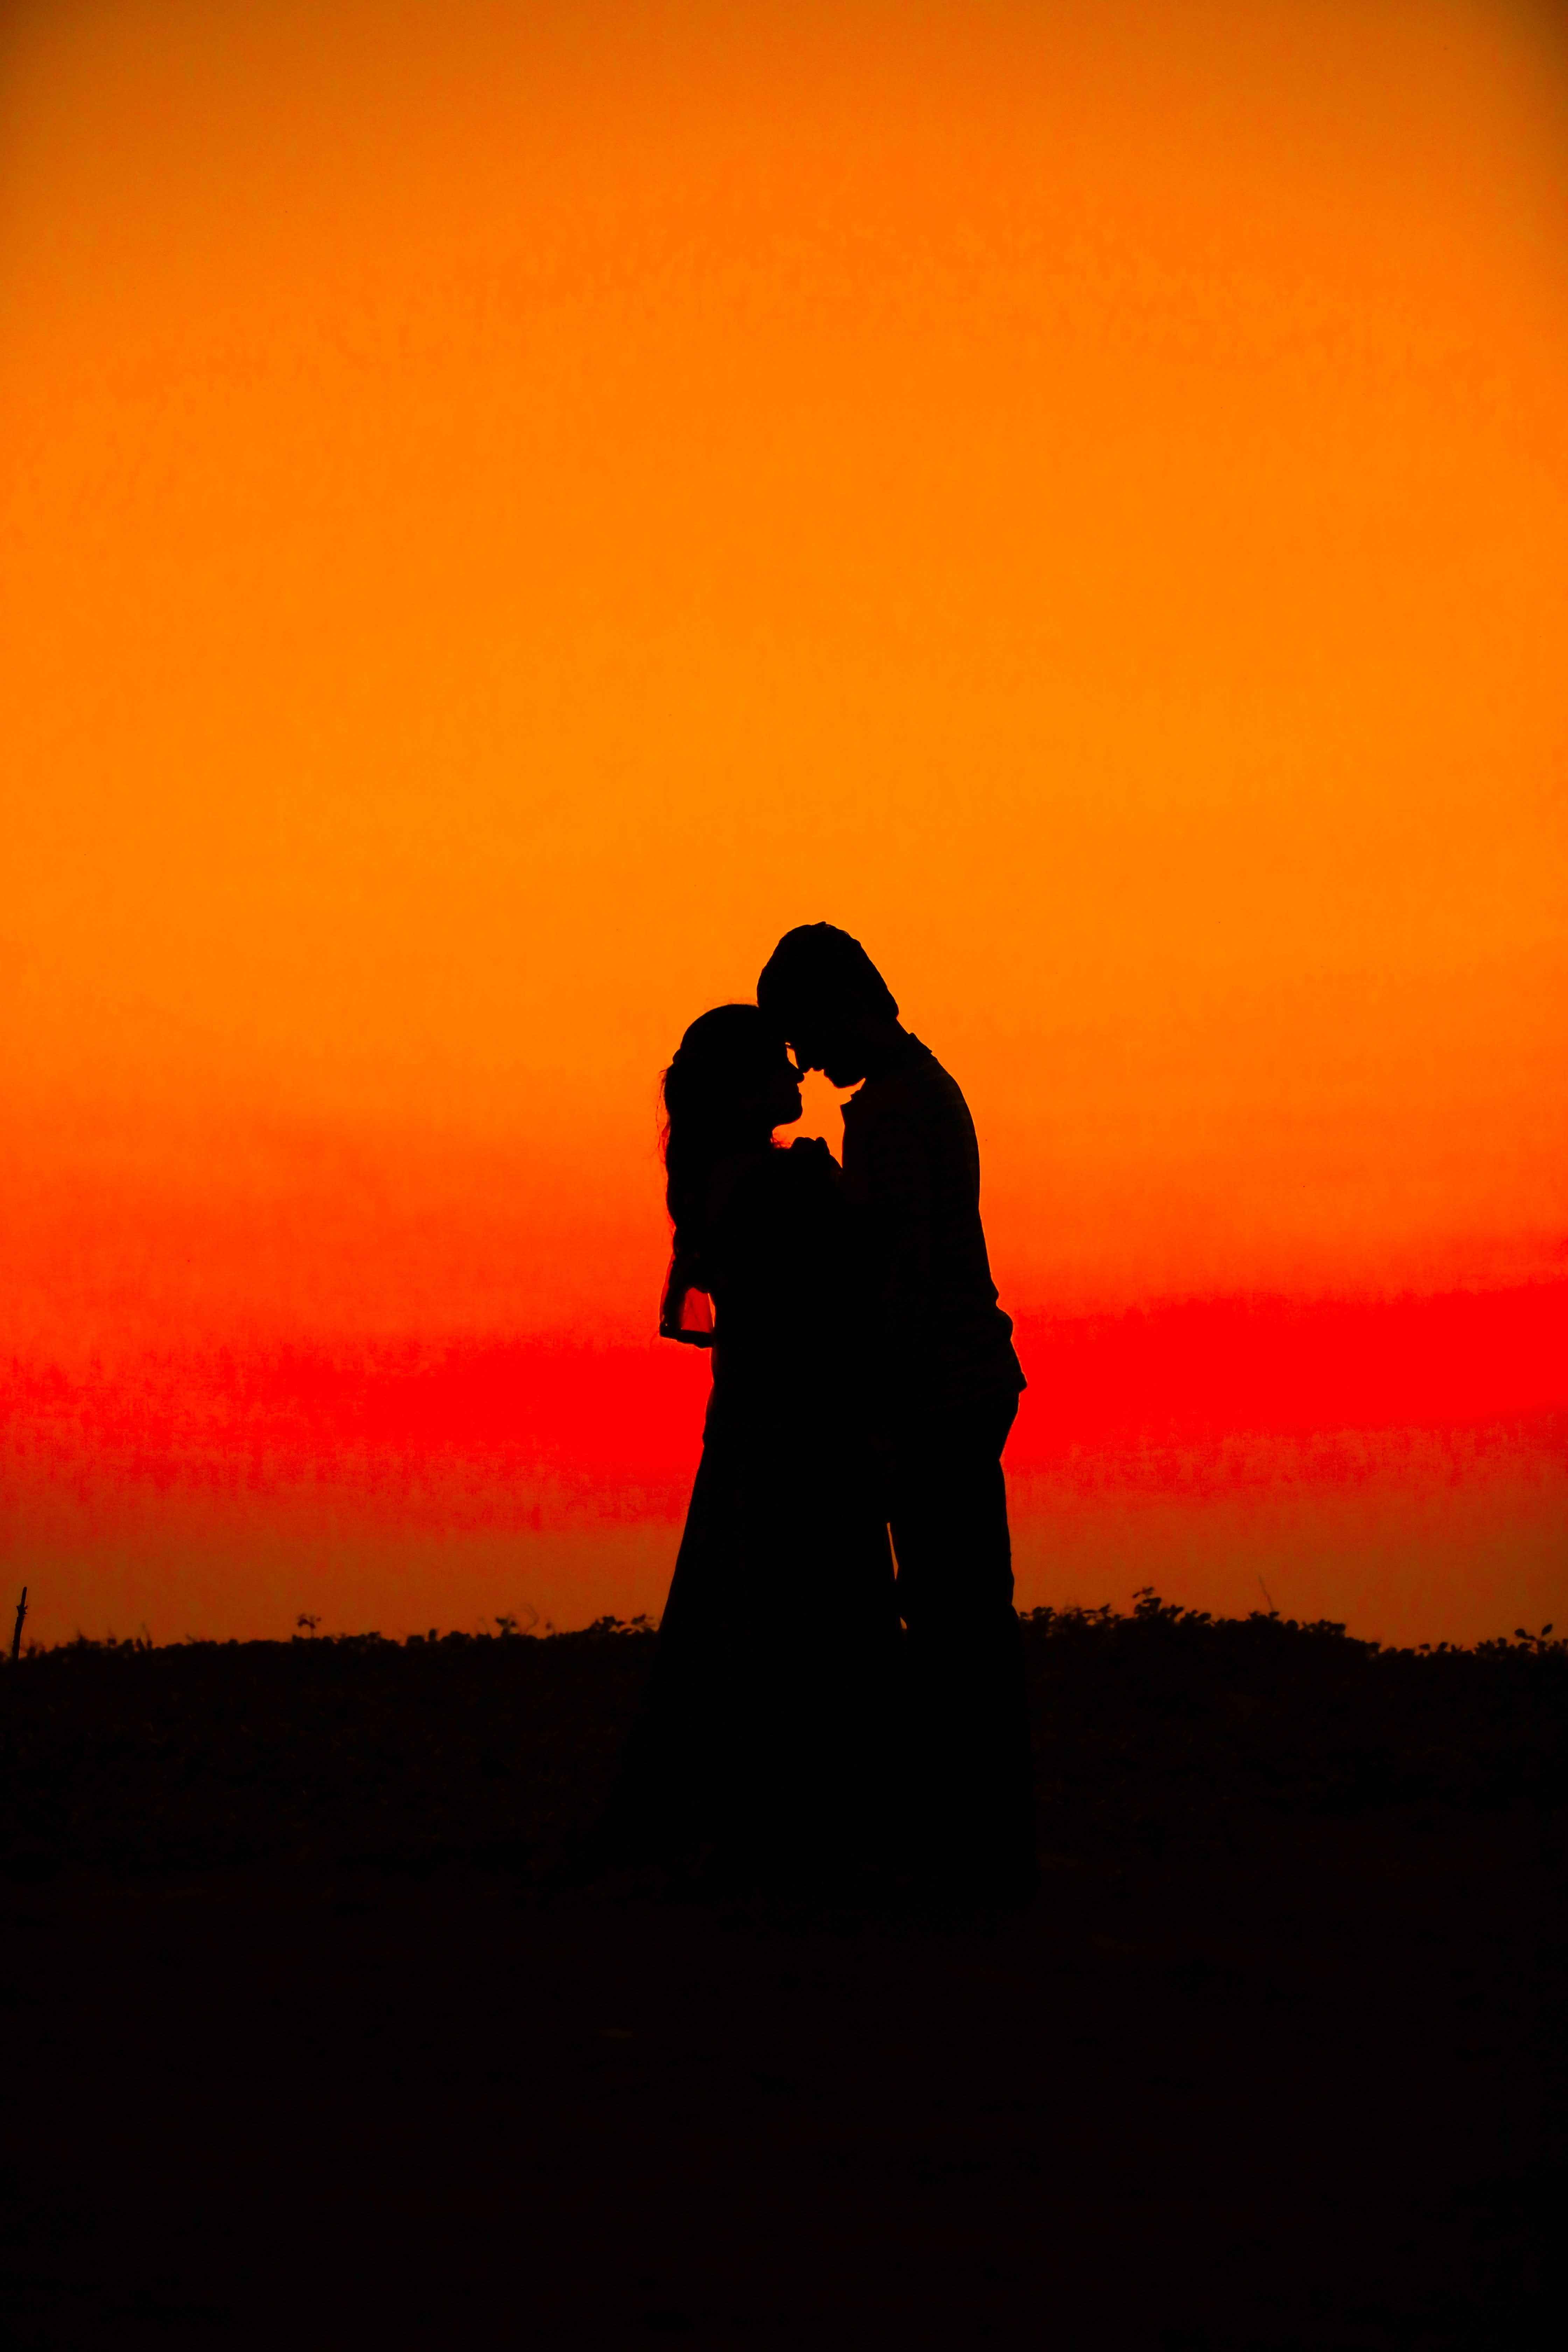 500 Romance Pictures Hd Download Free Images On Unsplash